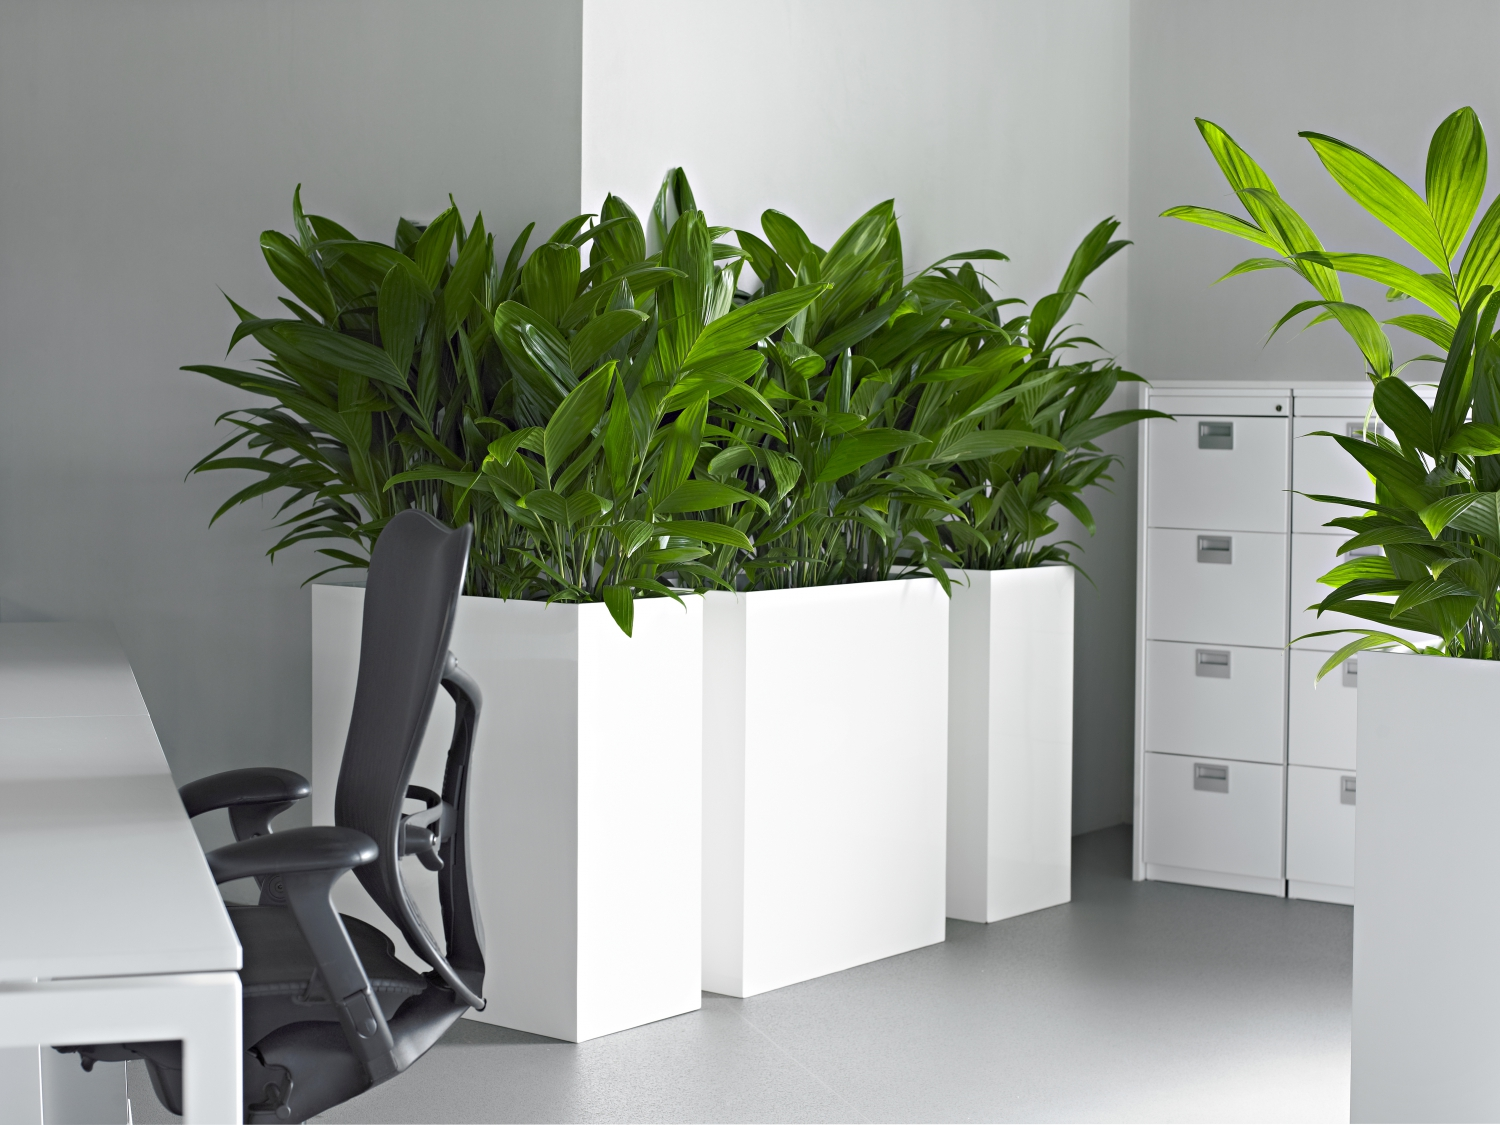 barrier plants create a clear privacy area with plants. Black Bedroom Furniture Sets. Home Design Ideas